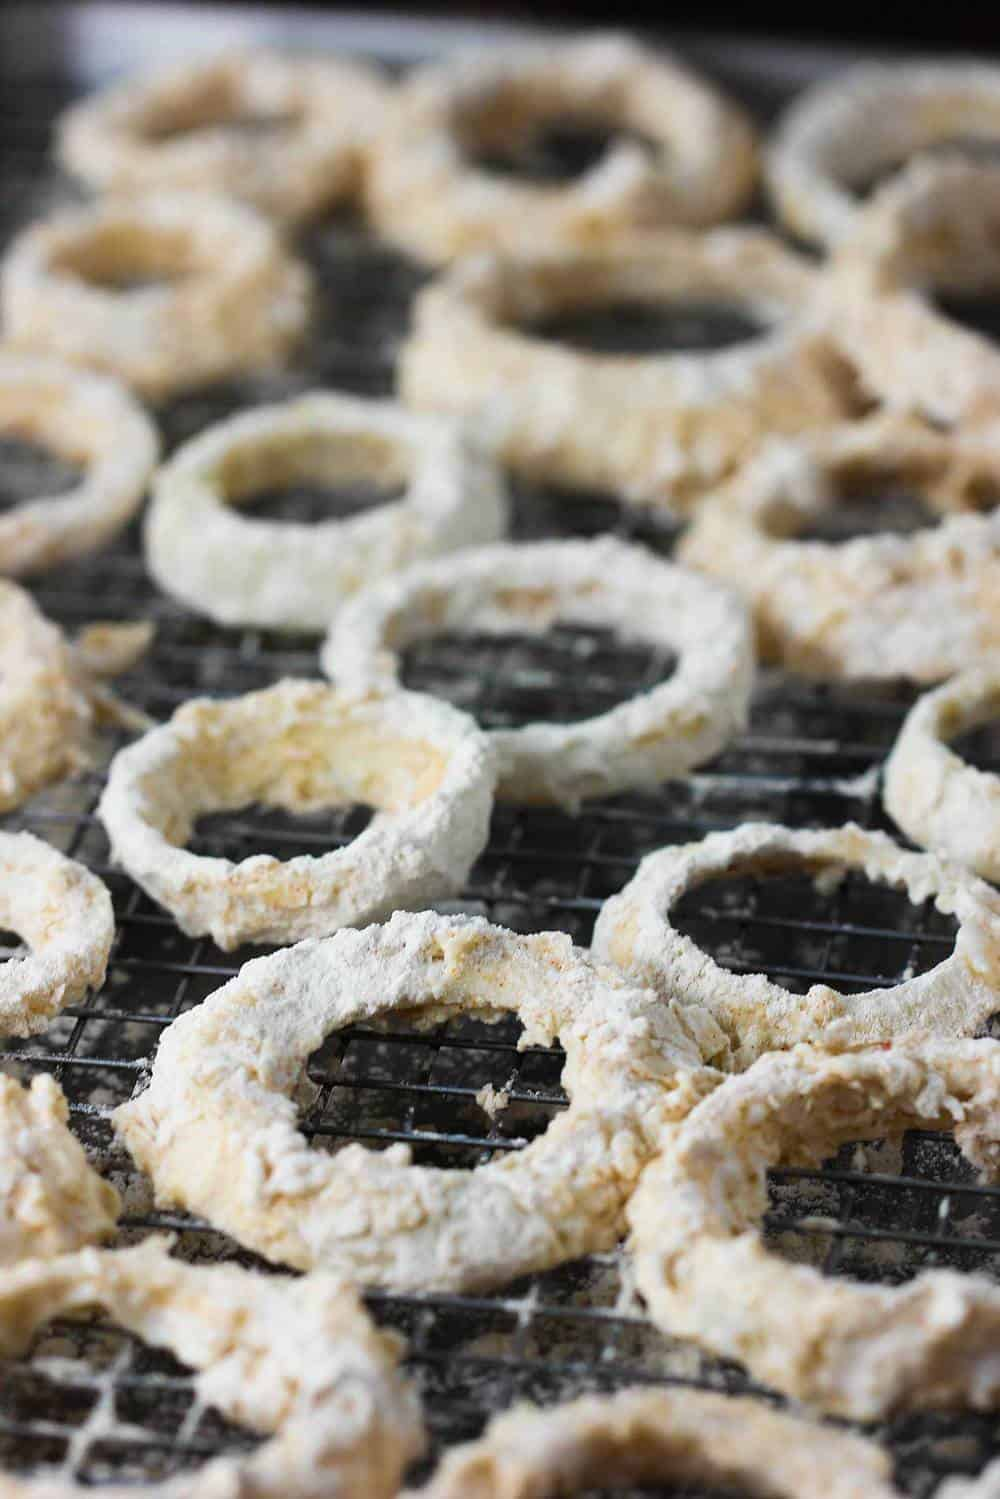 Breaded onion rings on a baking rack